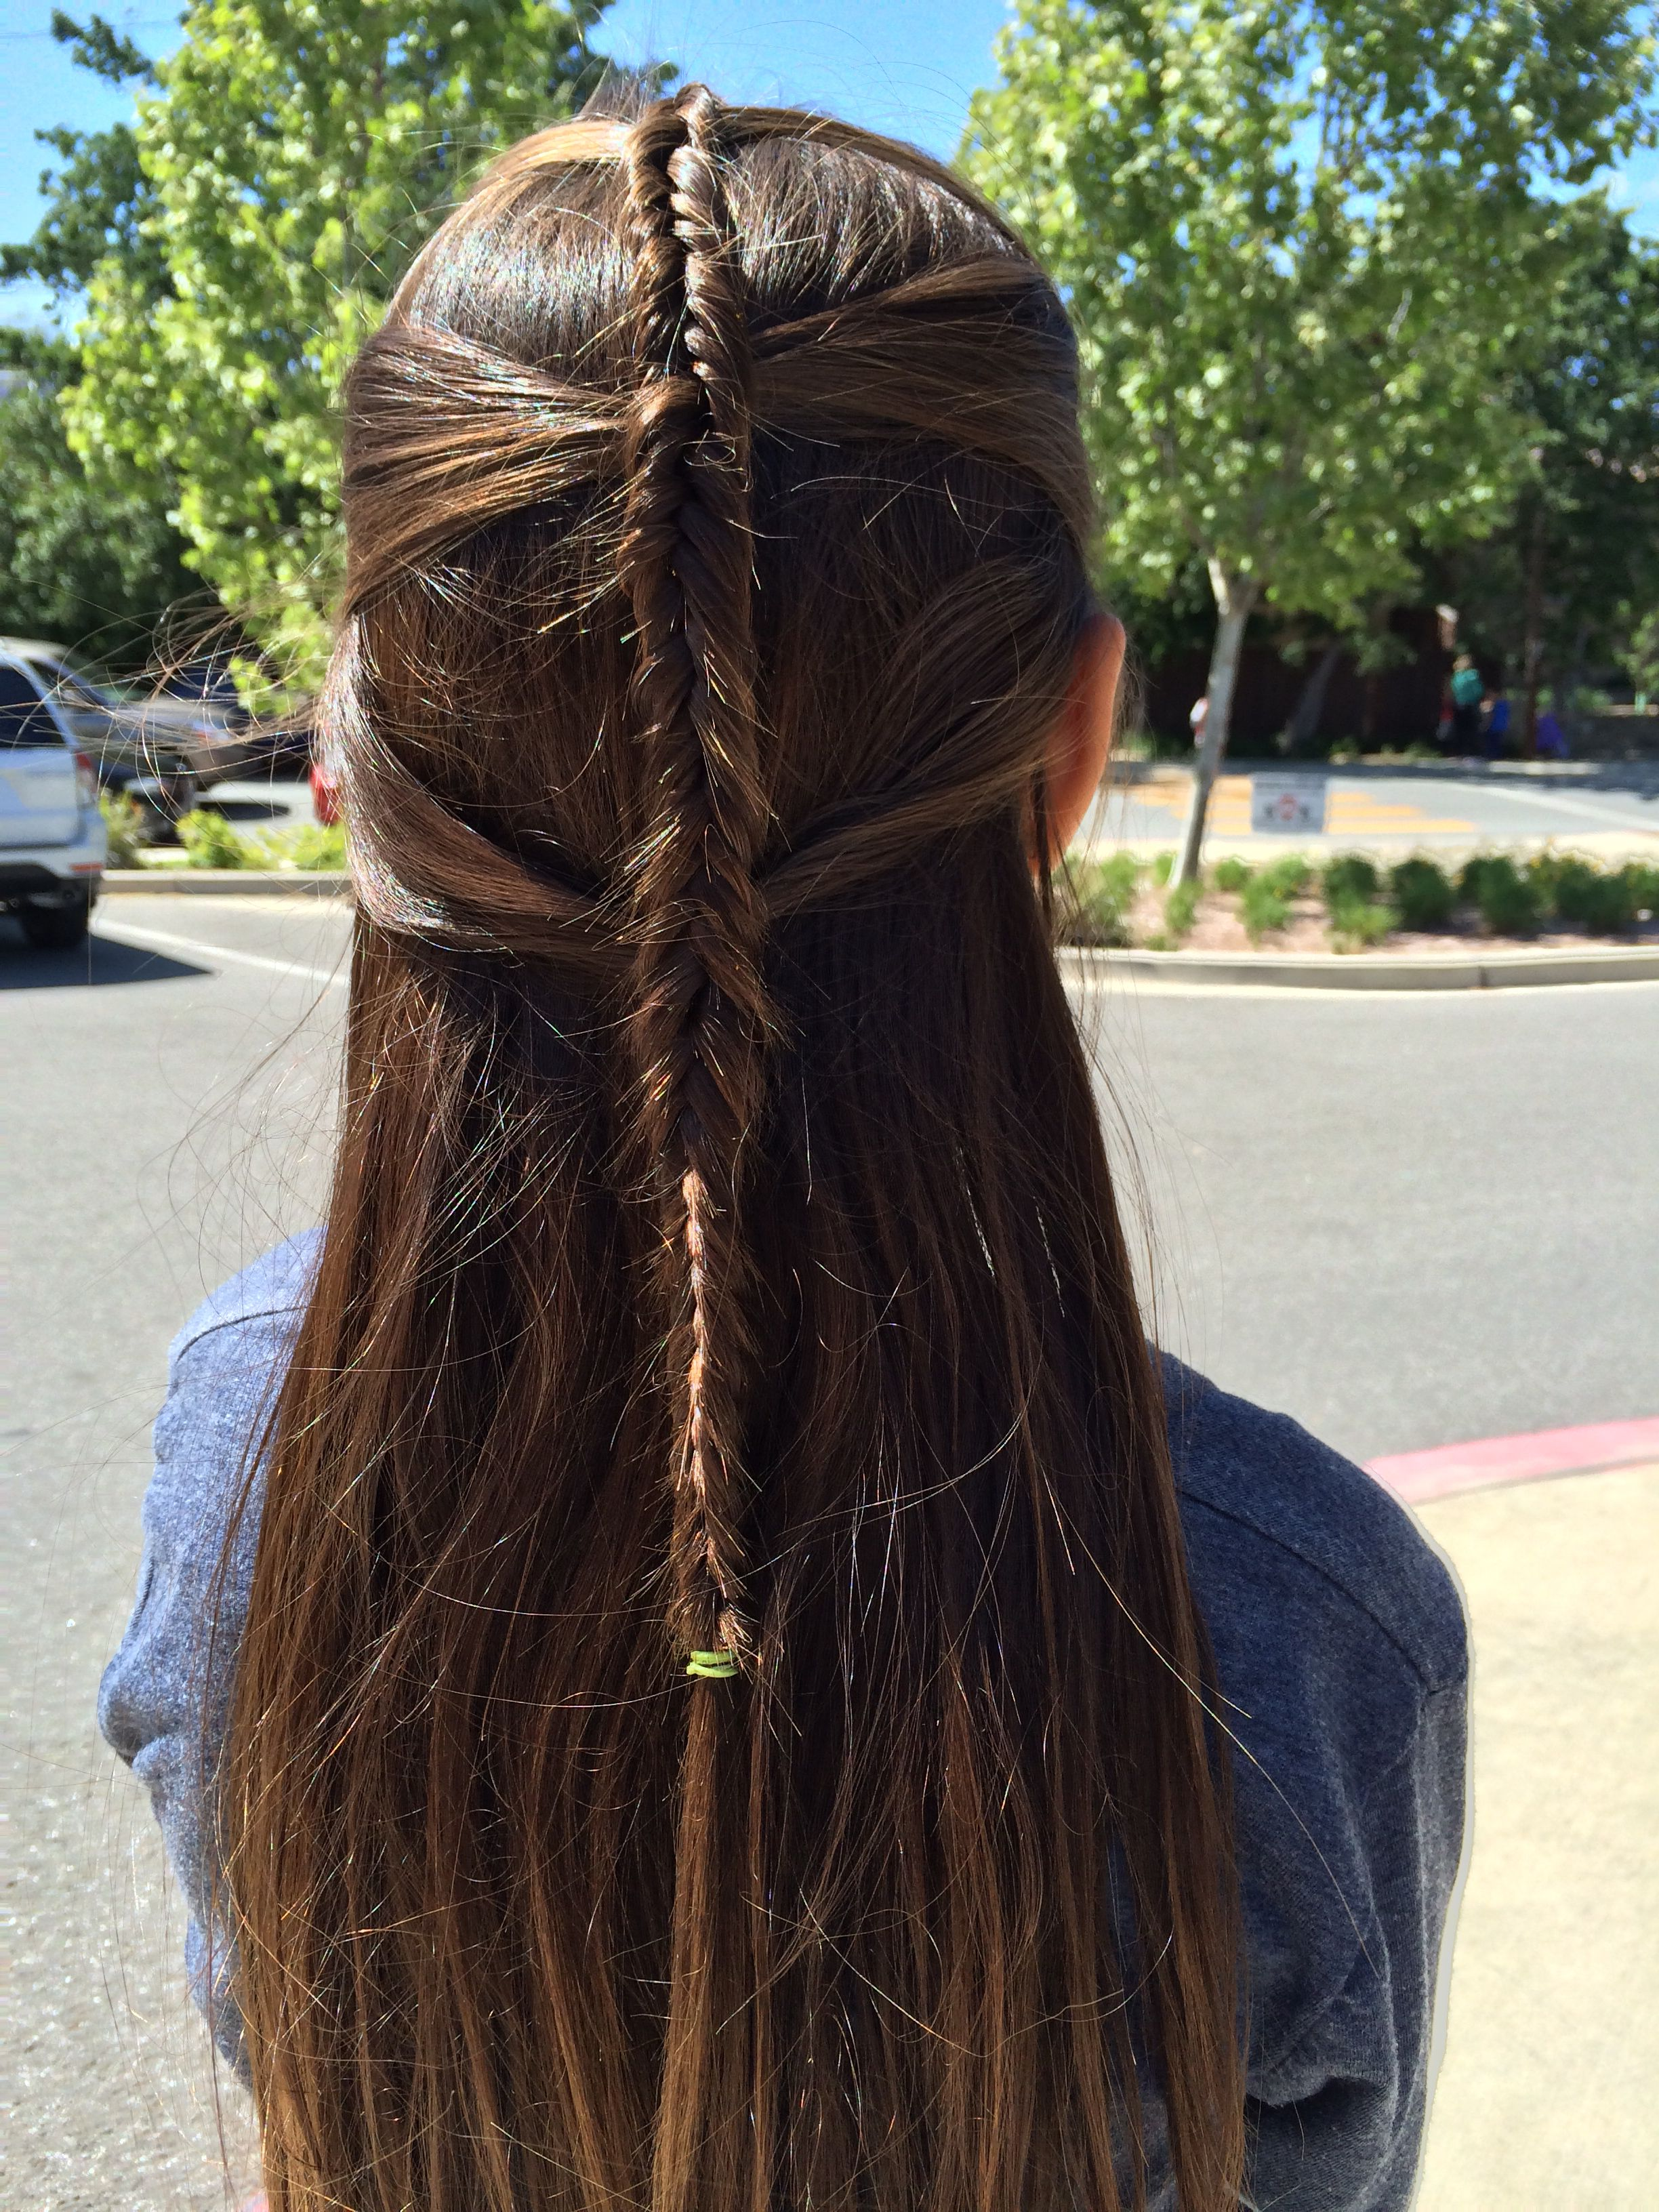 Lord Of The Rings Elf Inspired Hair Done By Raenen Hansen